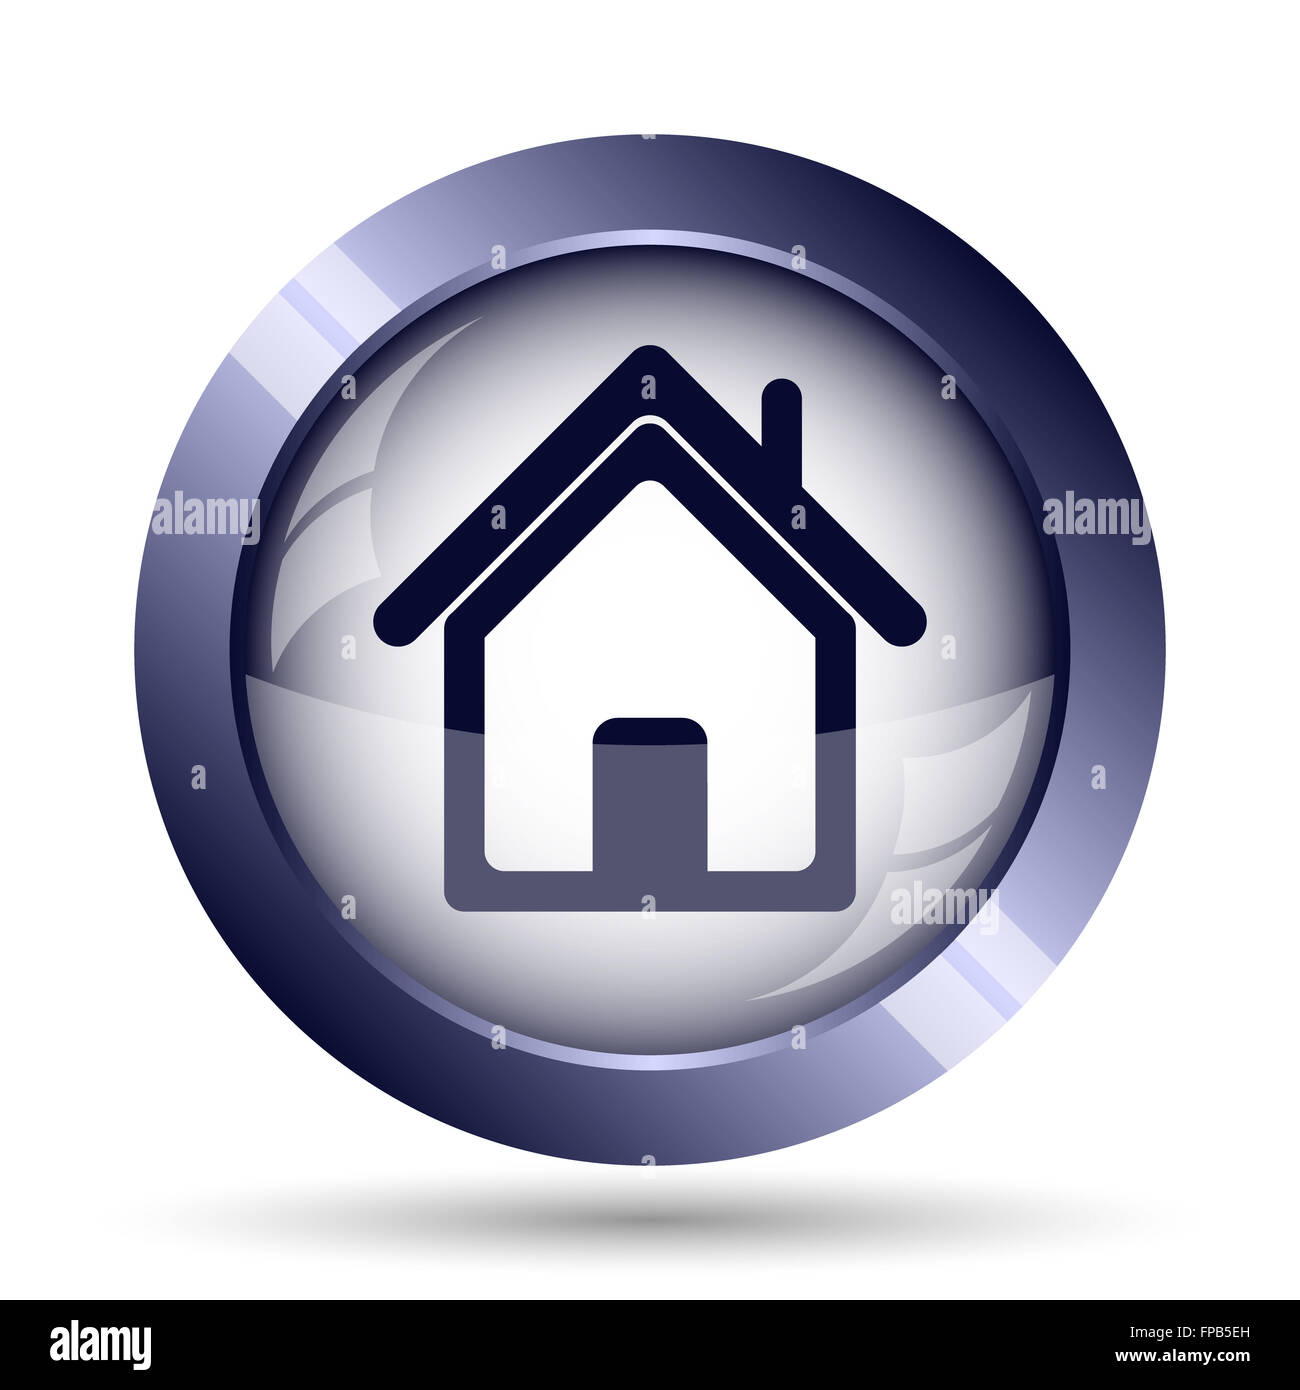 Home icon. Internet button on white background. - Stock Image